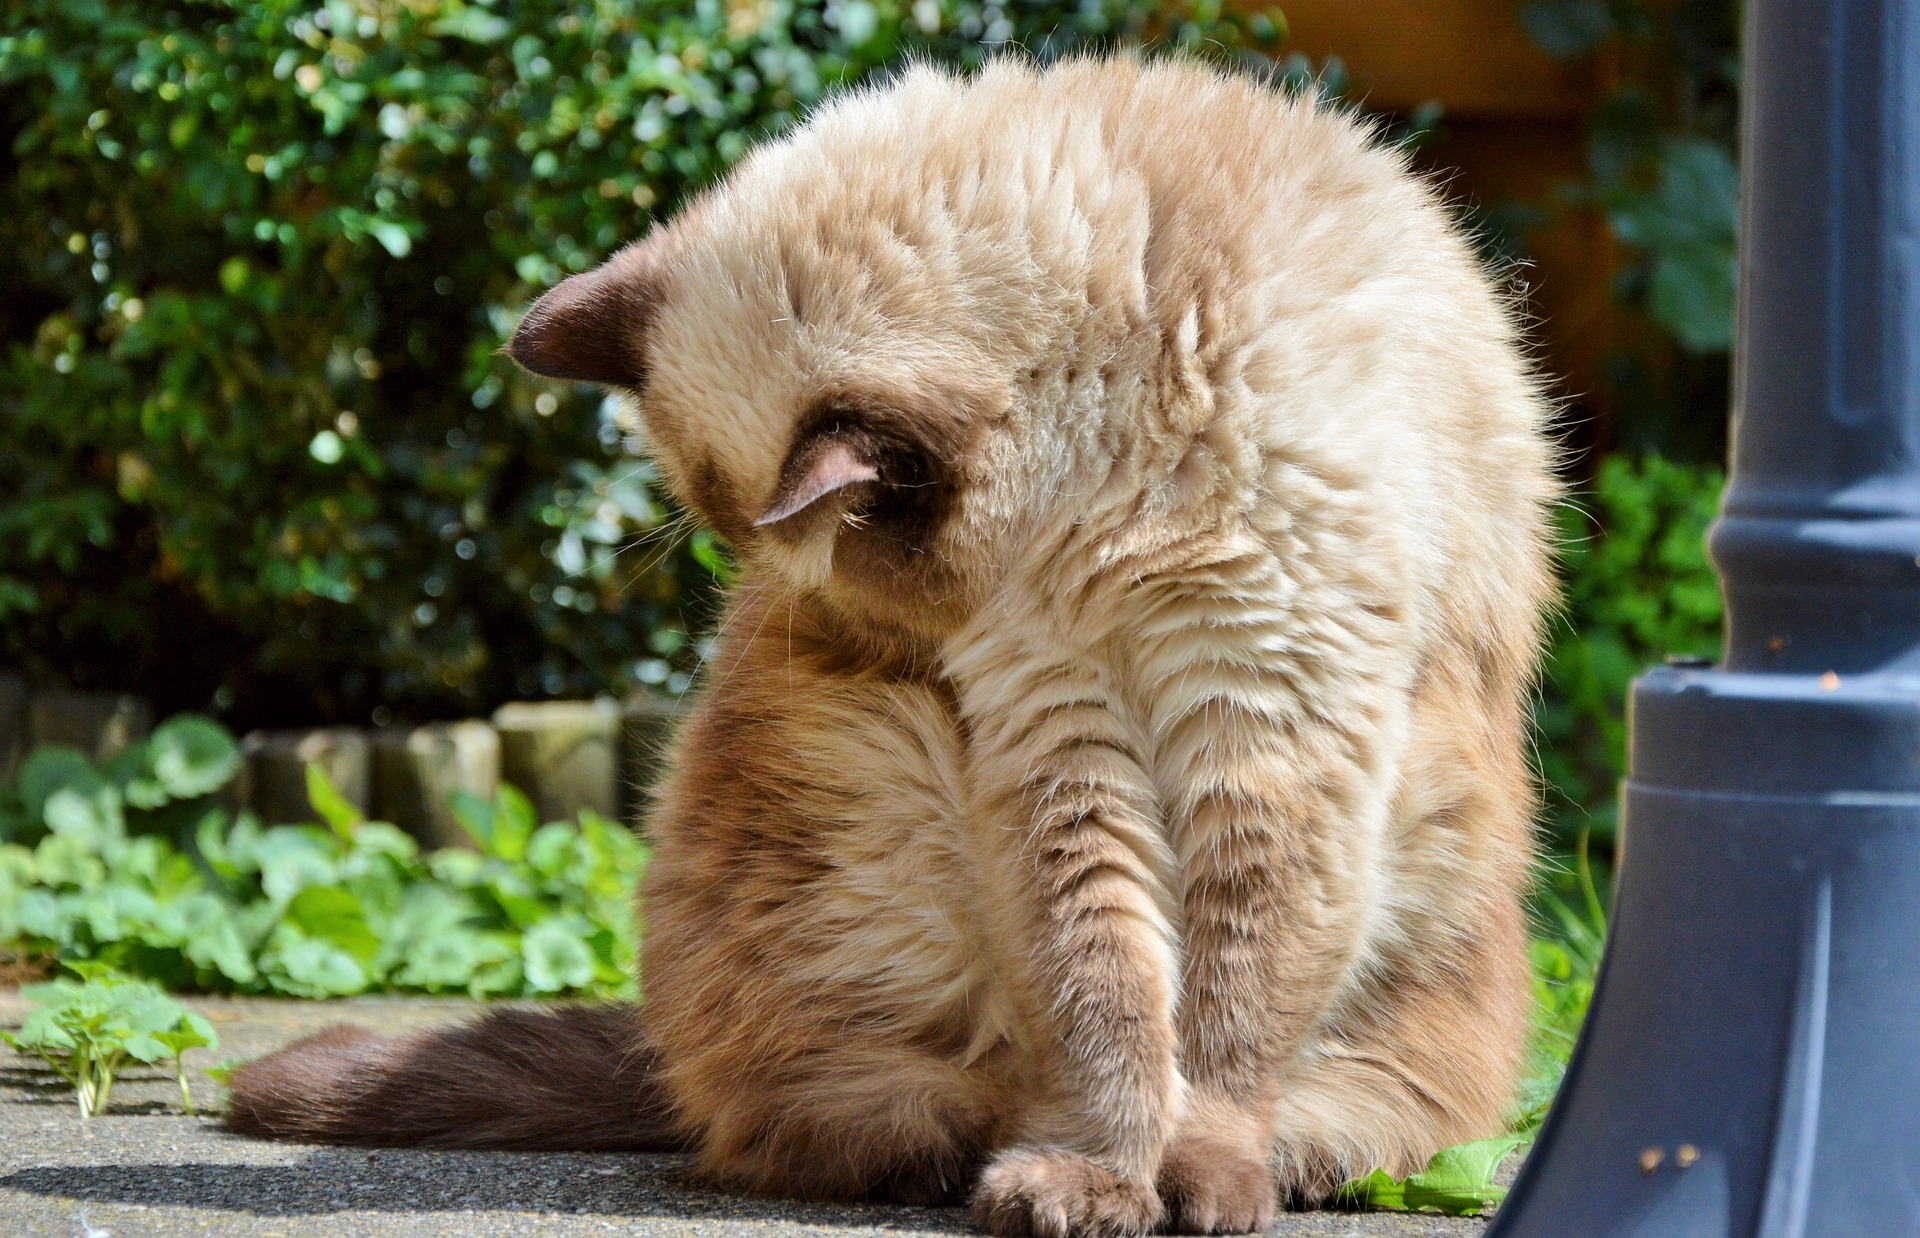 Cats can develop hairballs while self-grooming